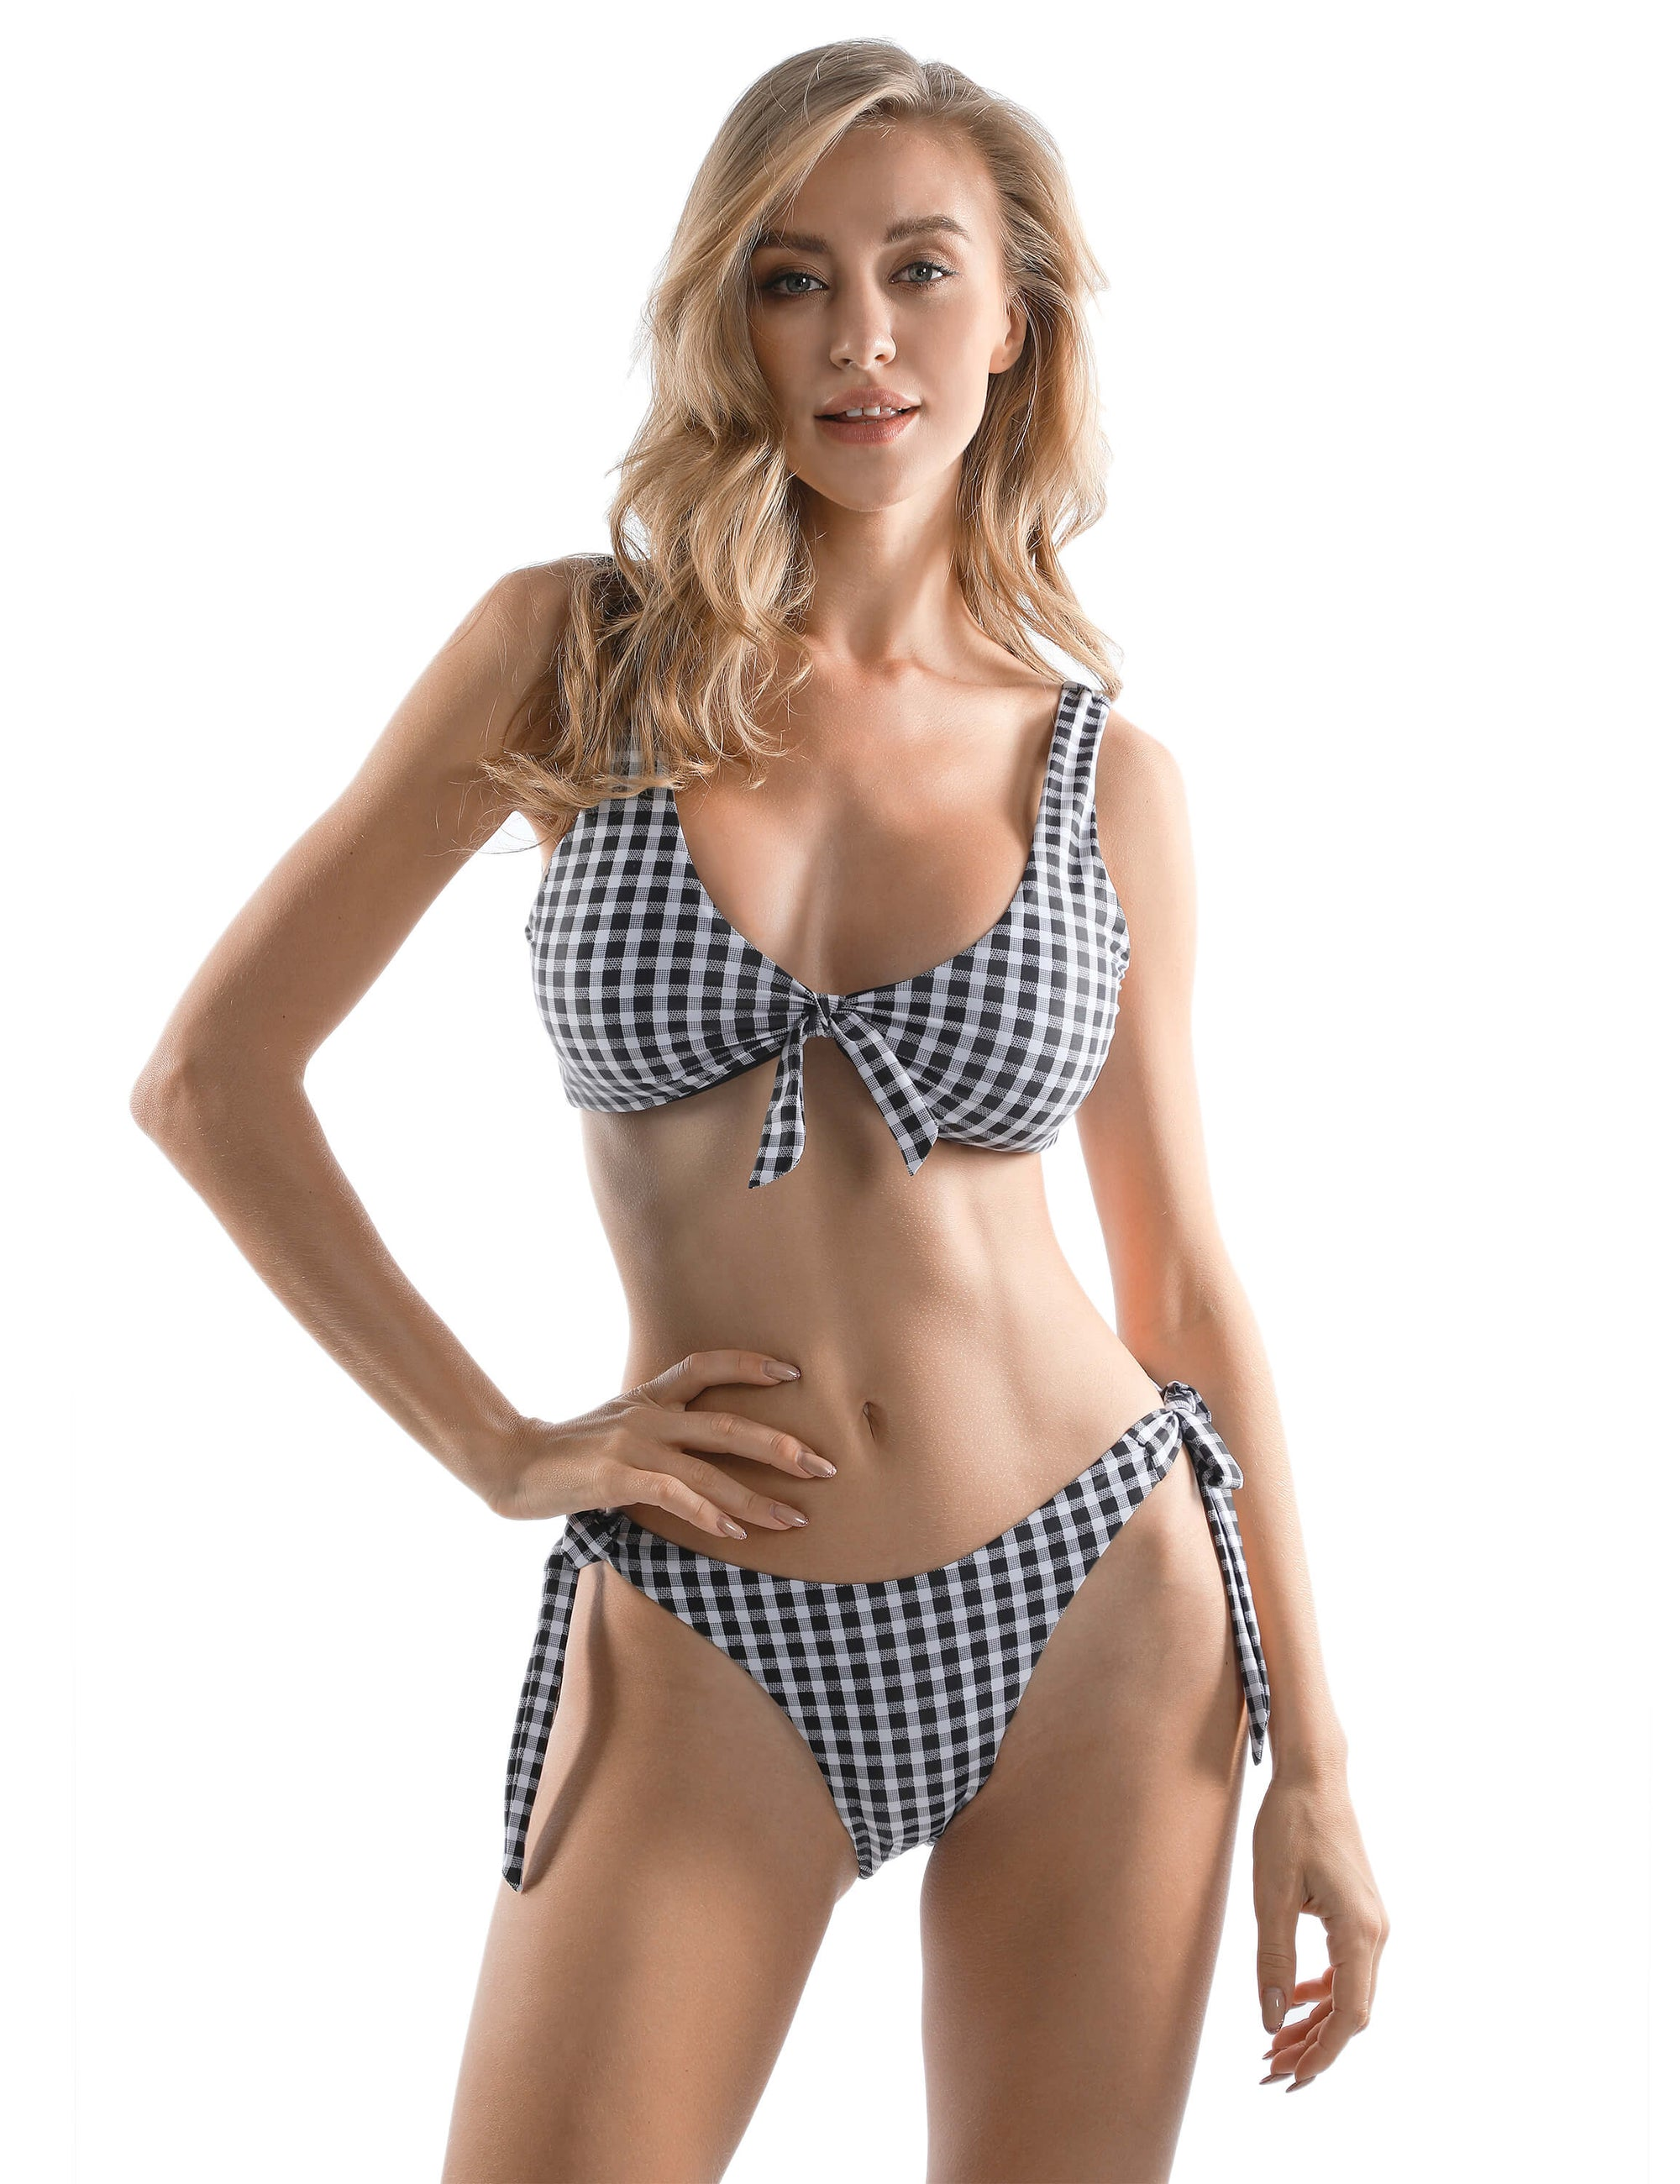 Blooming Jelly_You Look Gorgeous Bandeau Plaid Bikini Set_Black&White Plaid_113034_26_Women Sexy Beach Vacation Wear_Swimsuit_Bikini Set